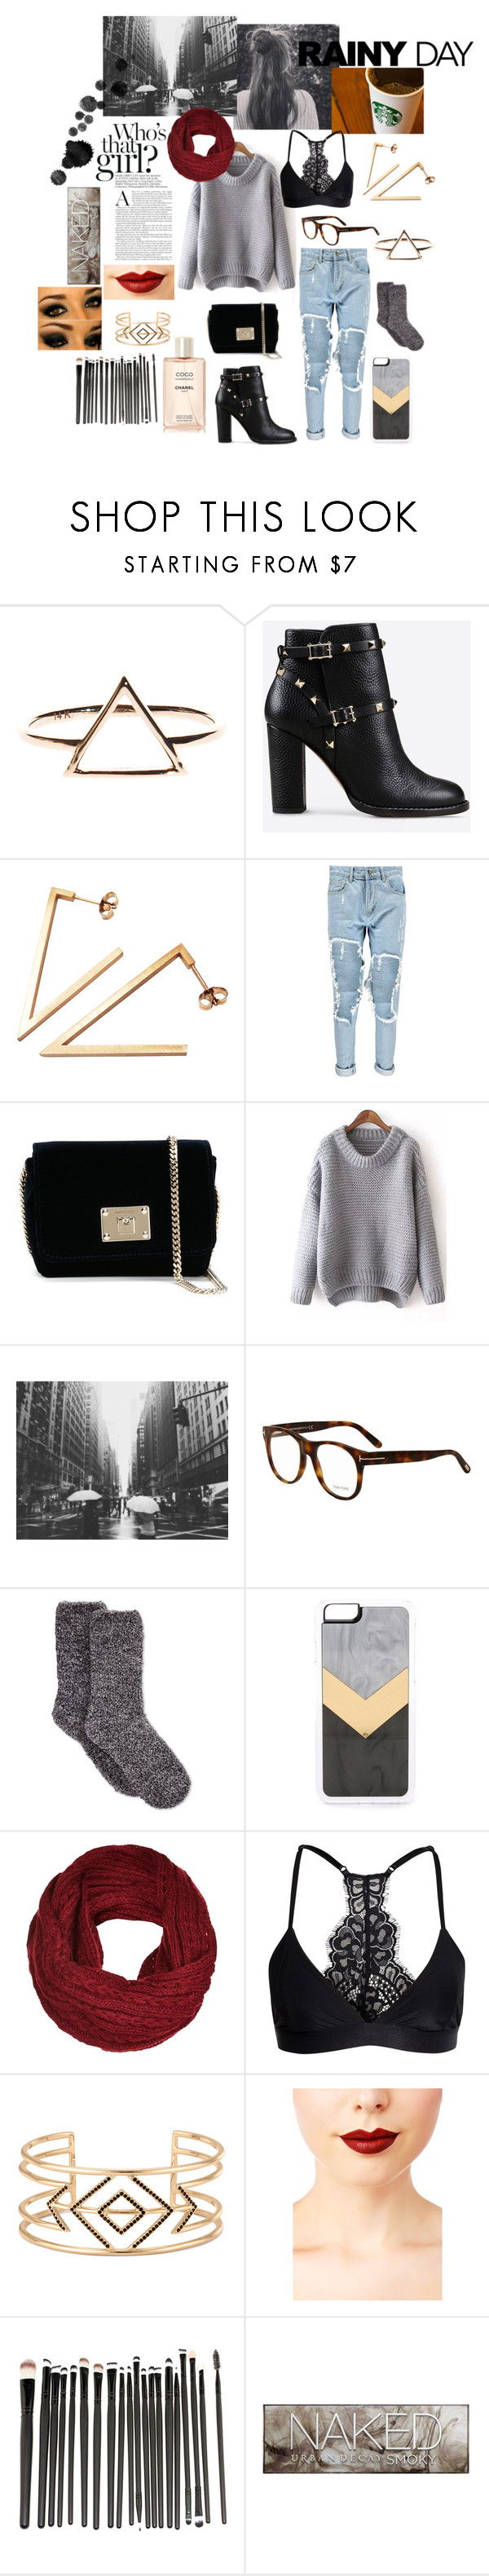 """Gray days and coffee dates"" by mara9914 ❤ liked on Polyvore featuring Valentino, Stephanie Bates, Boohoo, Jimmy Choo, Tom Ford, Charter Club, Zero Gravity, Y.A.S, Stella & Dot and Jeffree Star"